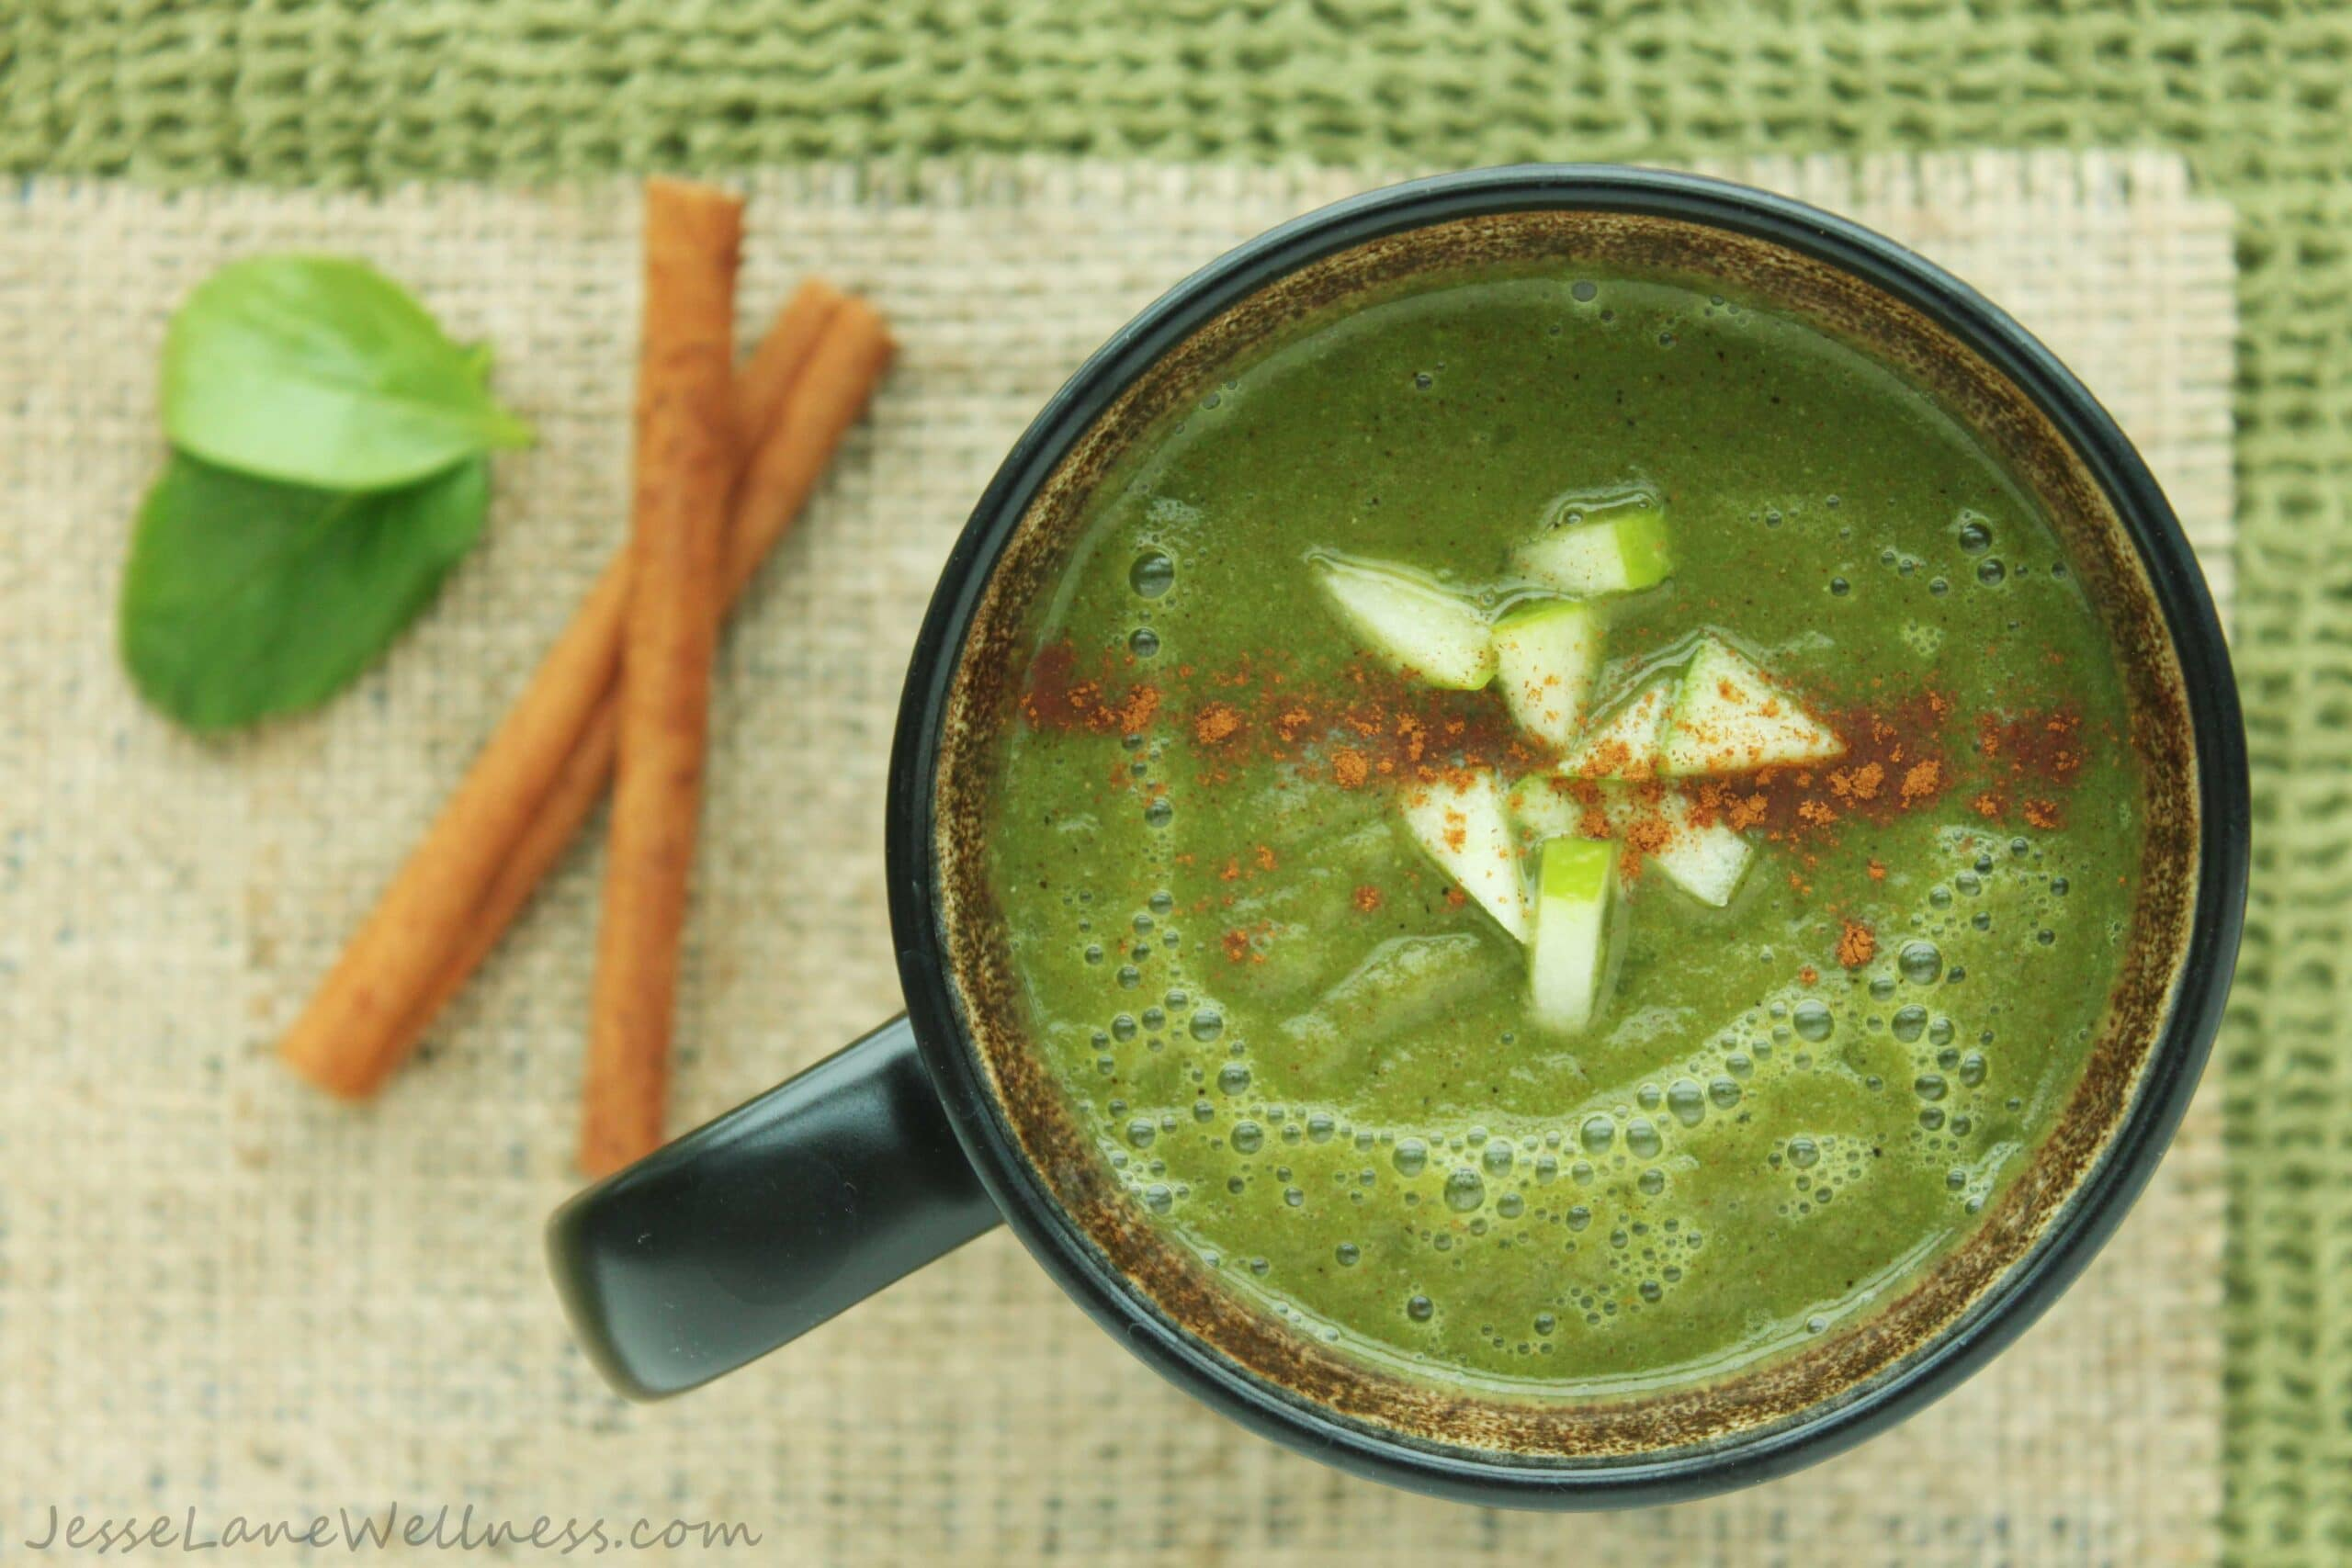 Hot Apple Cider Smoothie by @JesseLWellness #smoothie